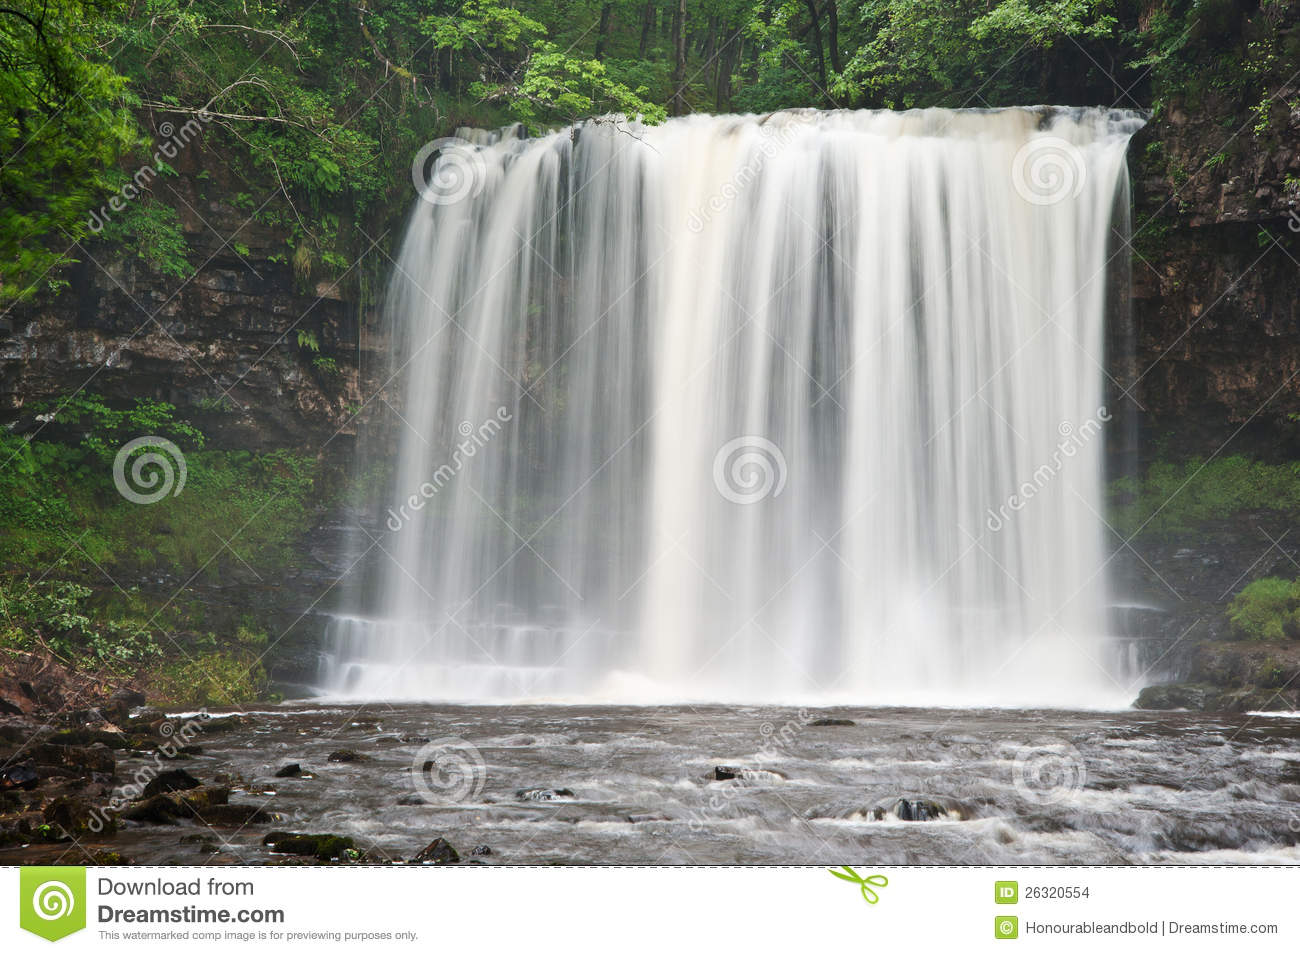 Beautiful image of waterfall in forest with stram and lush green